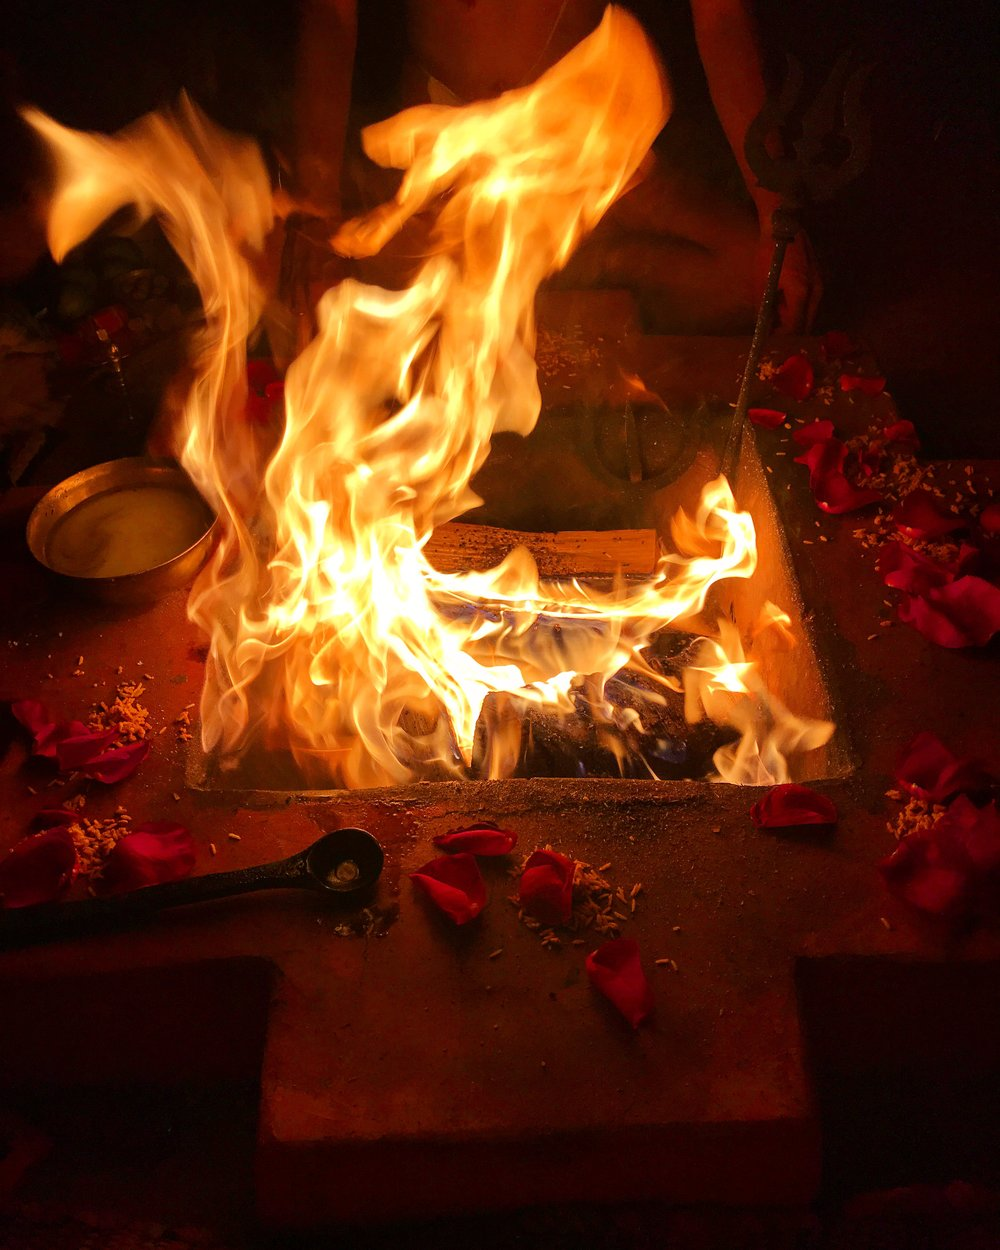 The sacred fire honoring Goddess Kamala blazes in the dhuni on the final night of Gupta Navaratri at Kali Mandir Ramakrishna Ashram.